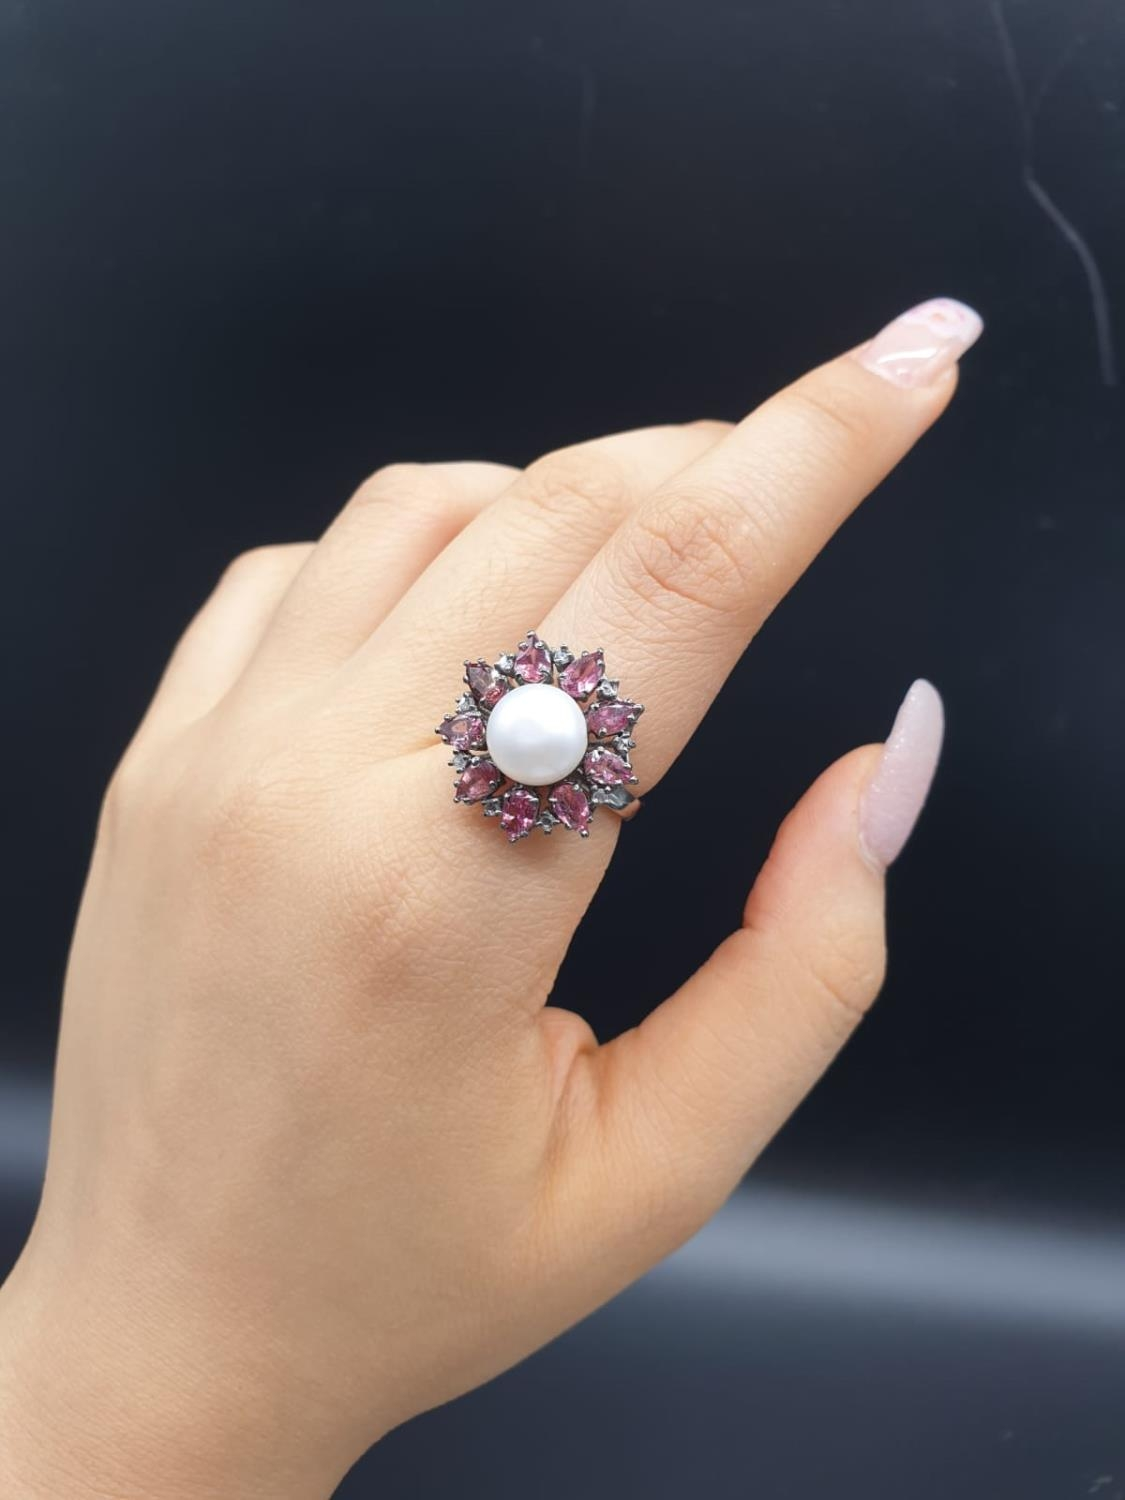 4.40 Cts Pearl & 2.35 Cts Pink Tourmalines set inside a 925 Blackened silver ring. With 0.20 Cts - Image 6 of 7